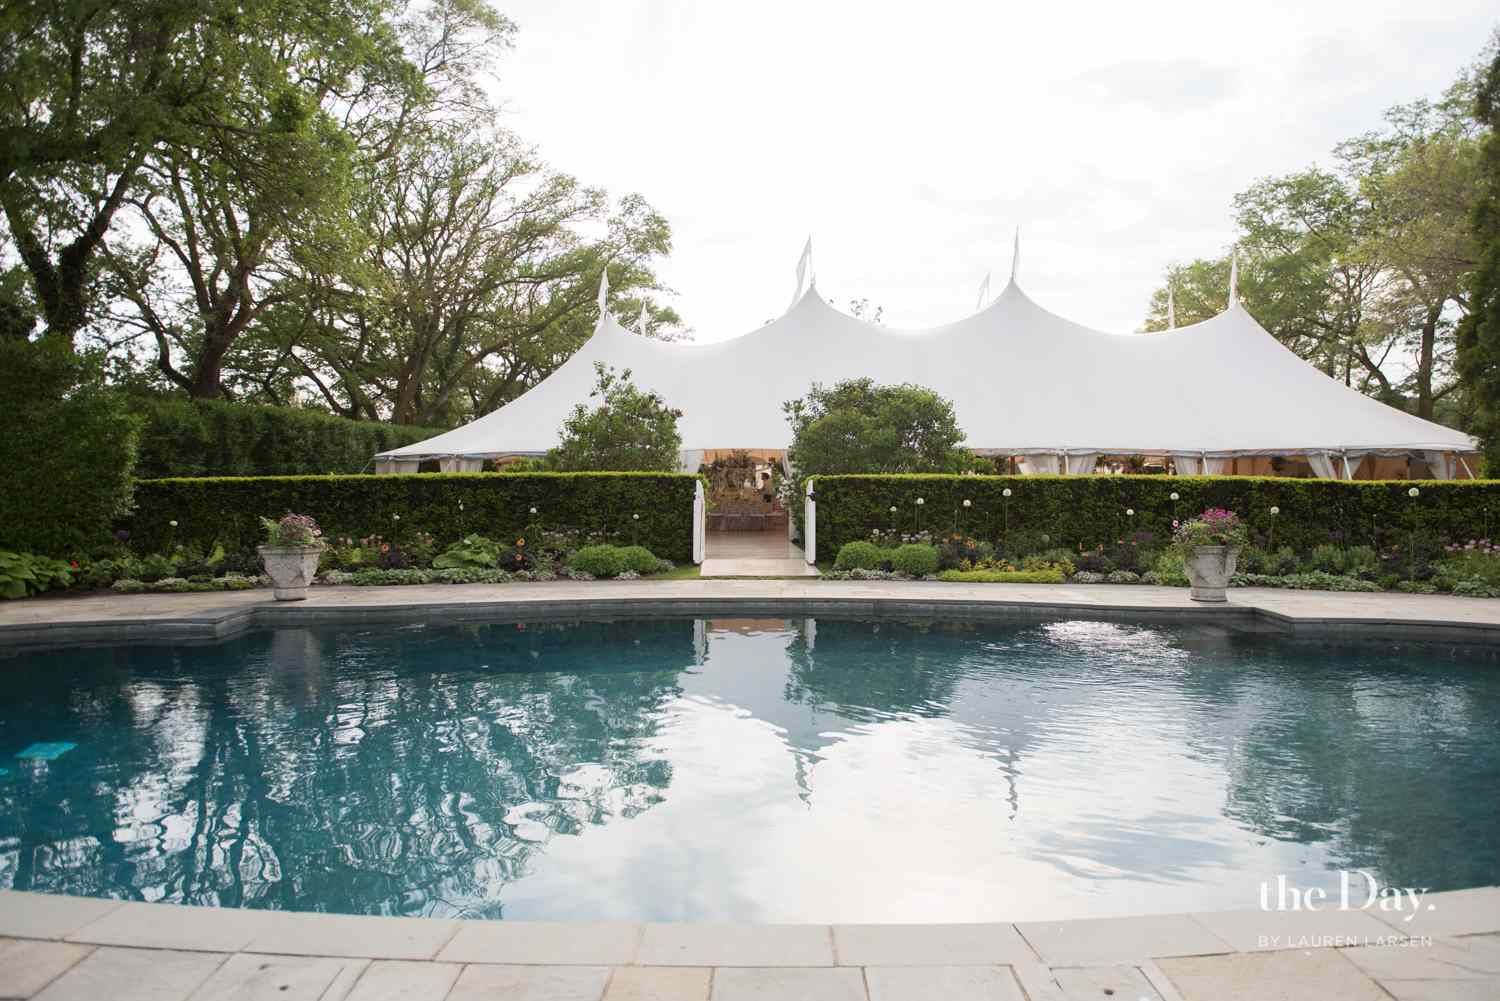 A swimming pool and tent